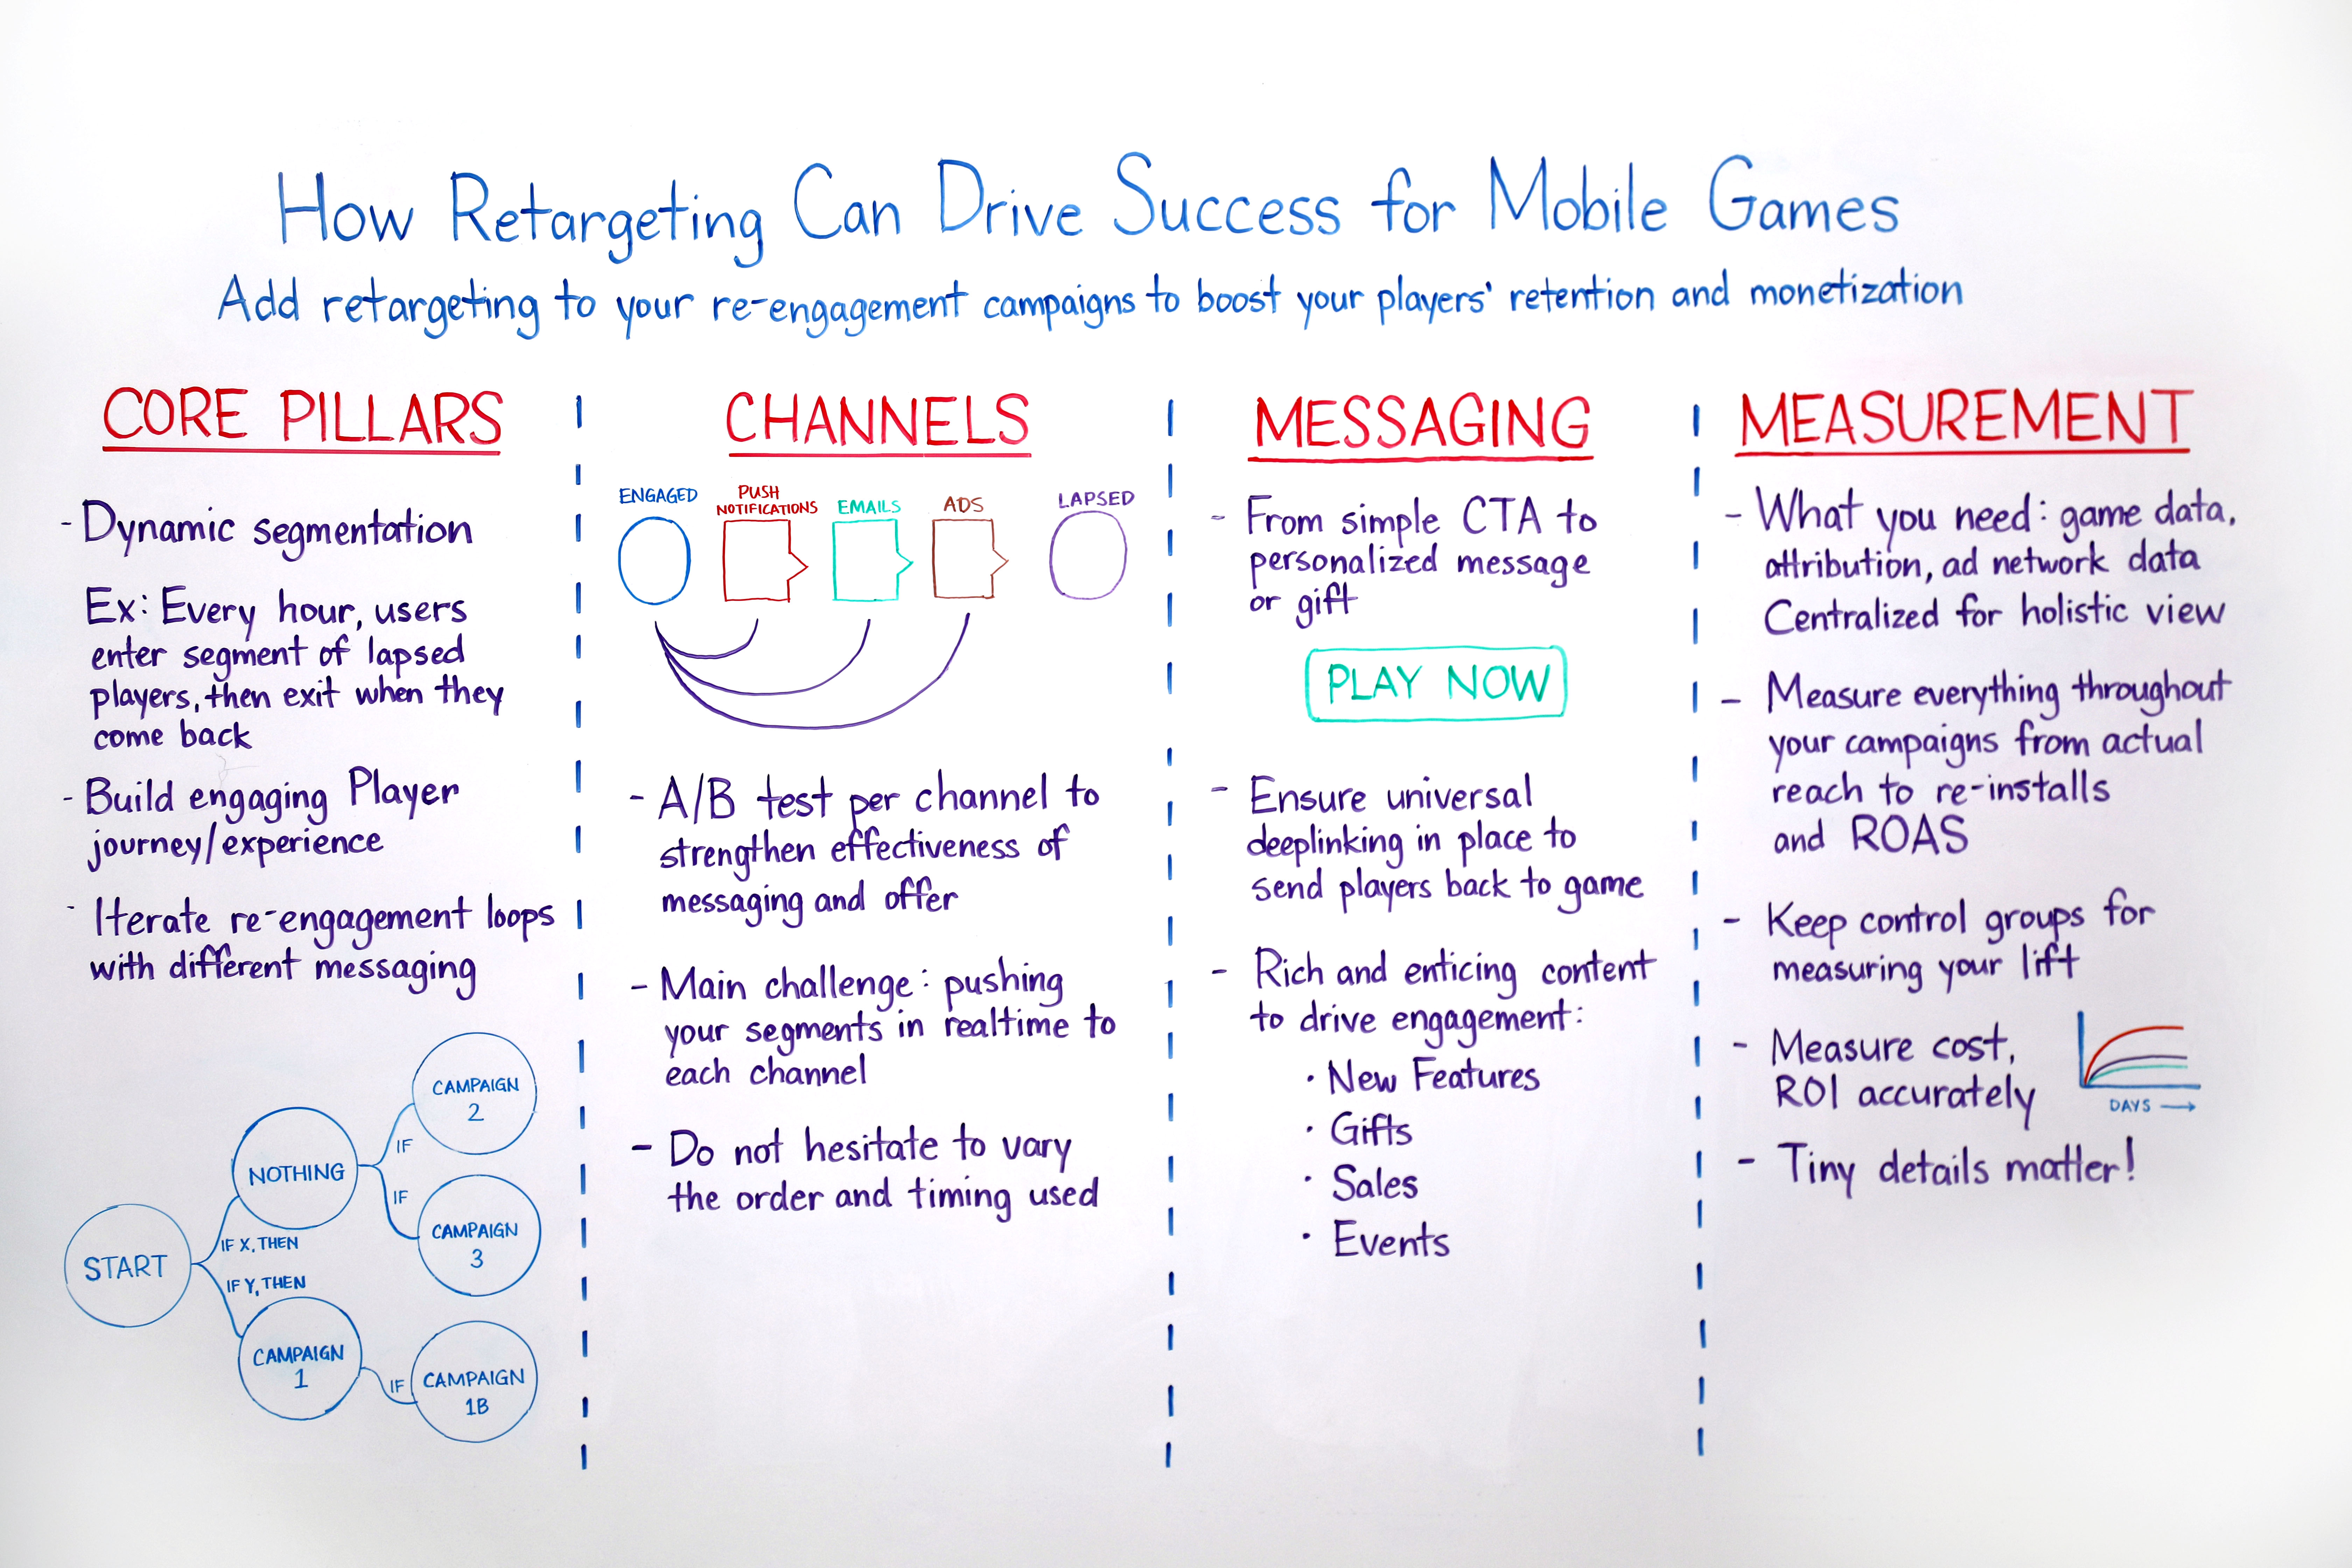 How Retargeting Can Drive Success for Mobile Games